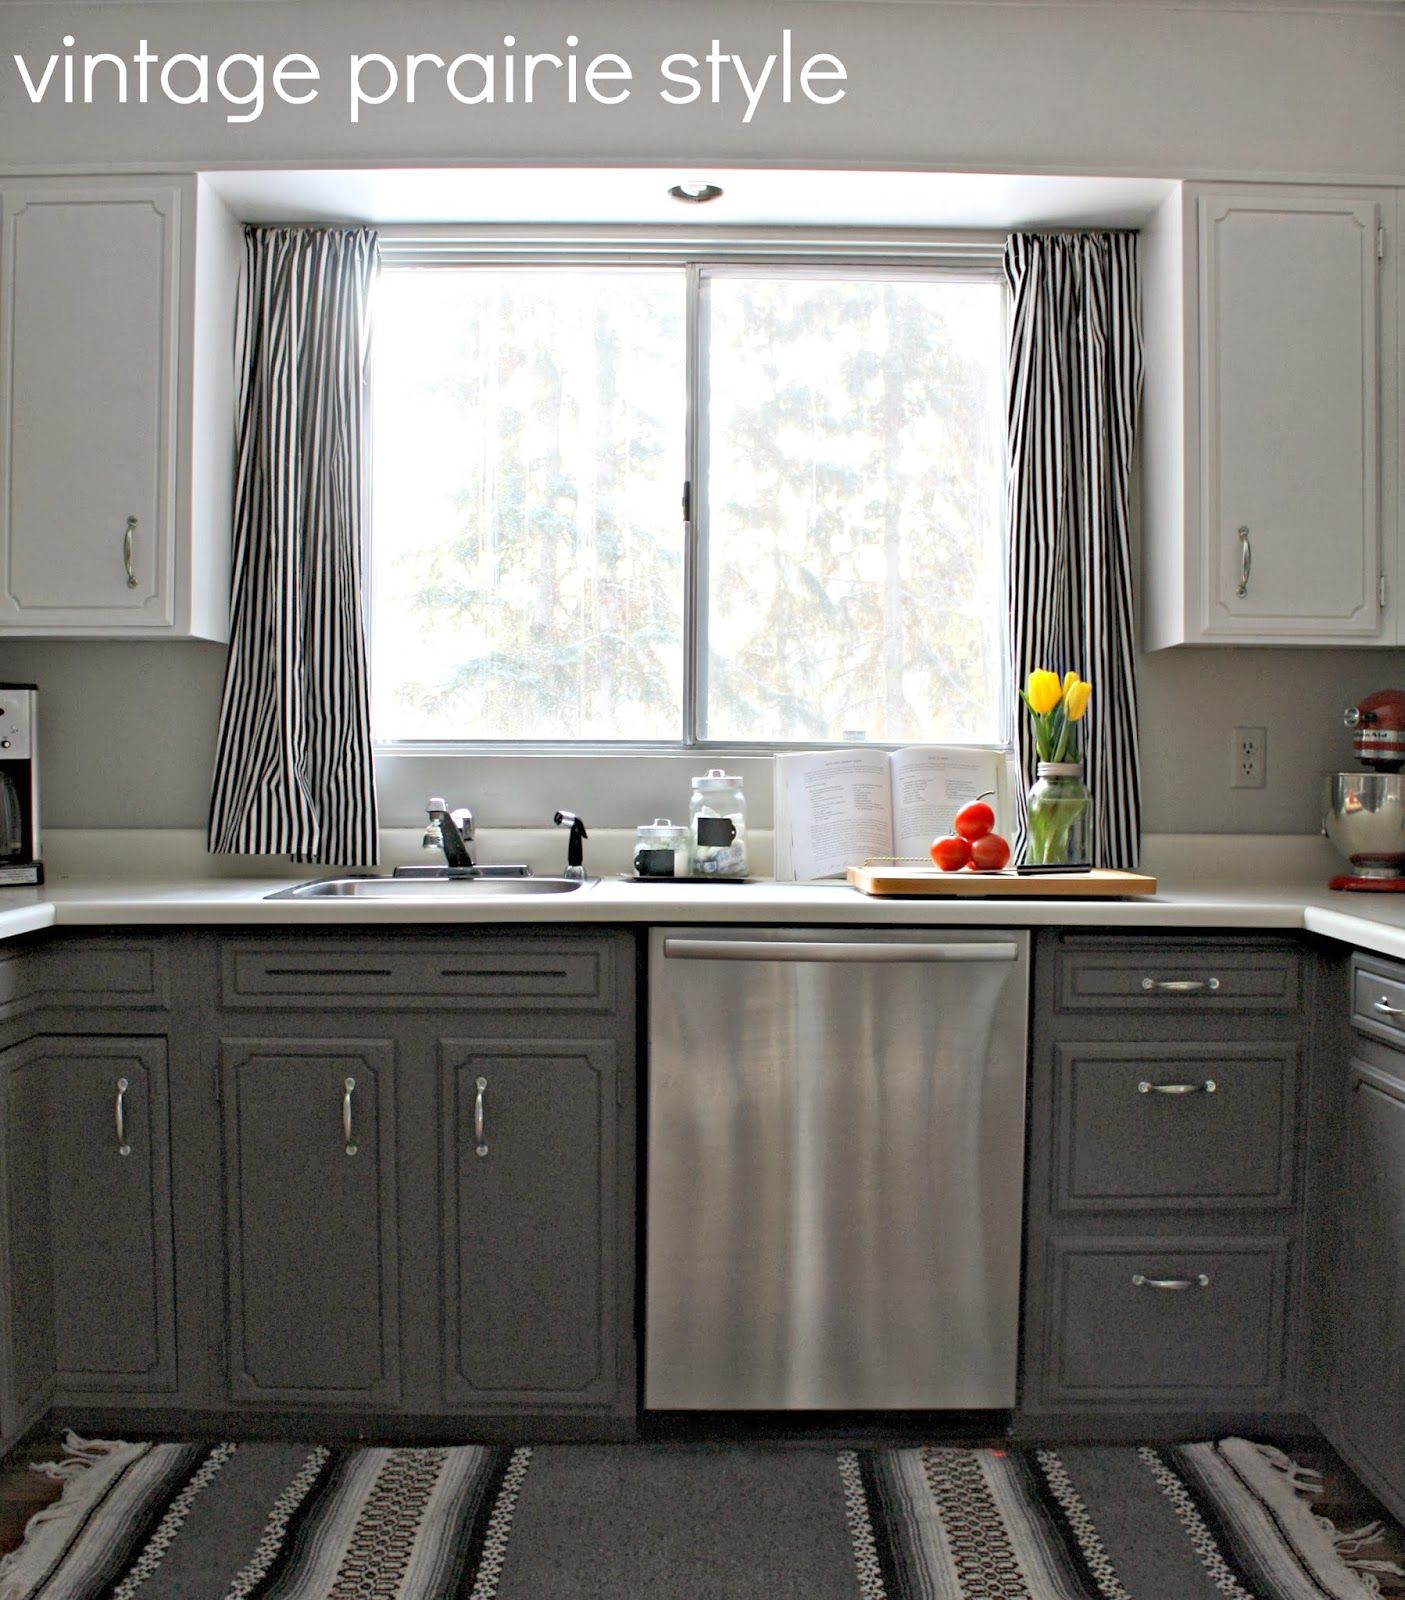 vintage prairie style: I've changed our kitchen... again ...